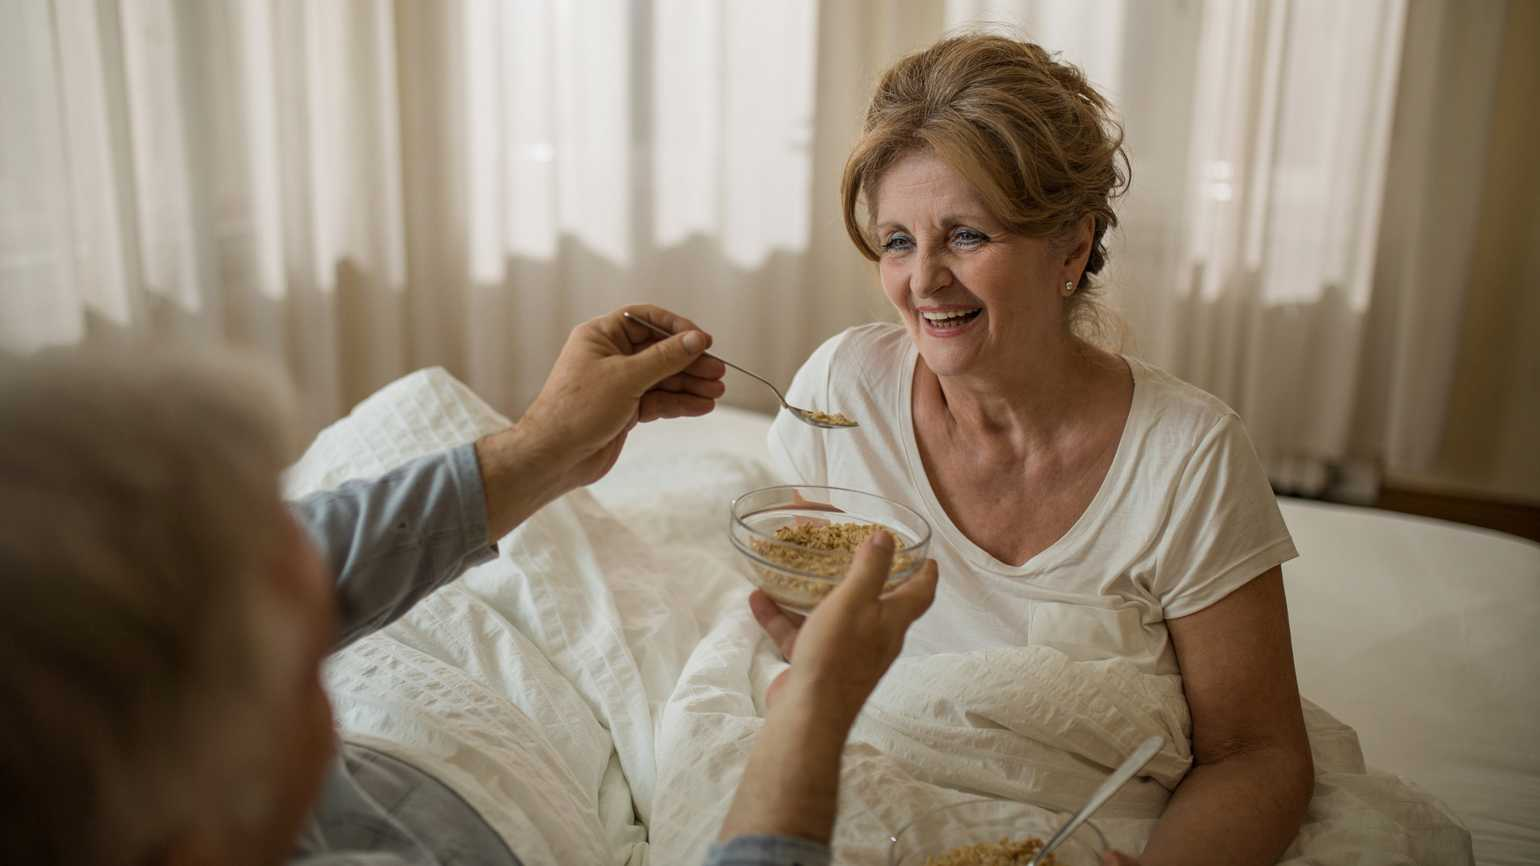 A woman being fed oatmeal in her bed.